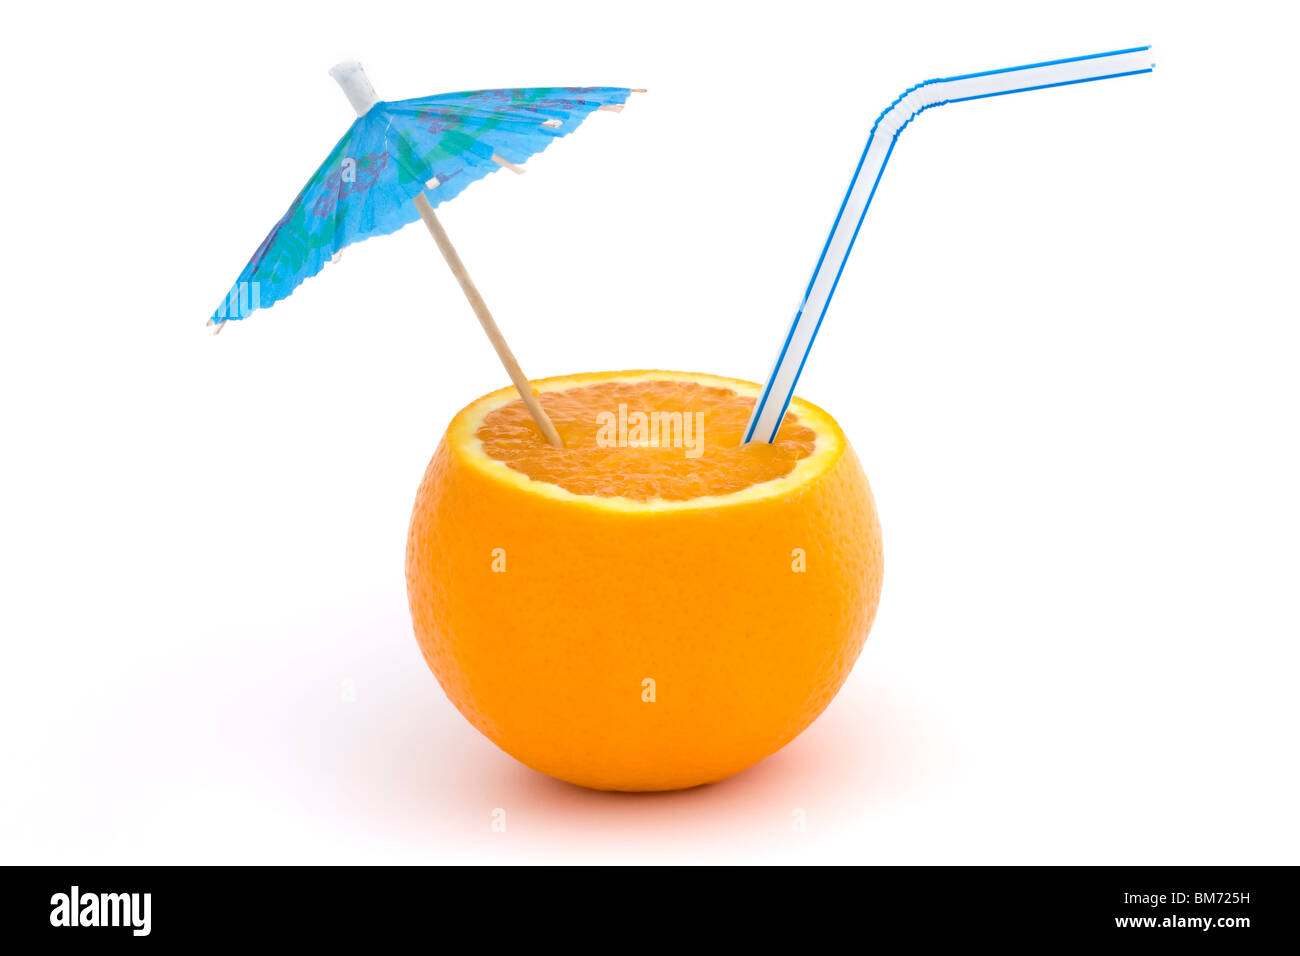 orange with straw and blue umbrella on a white background - Stock Image